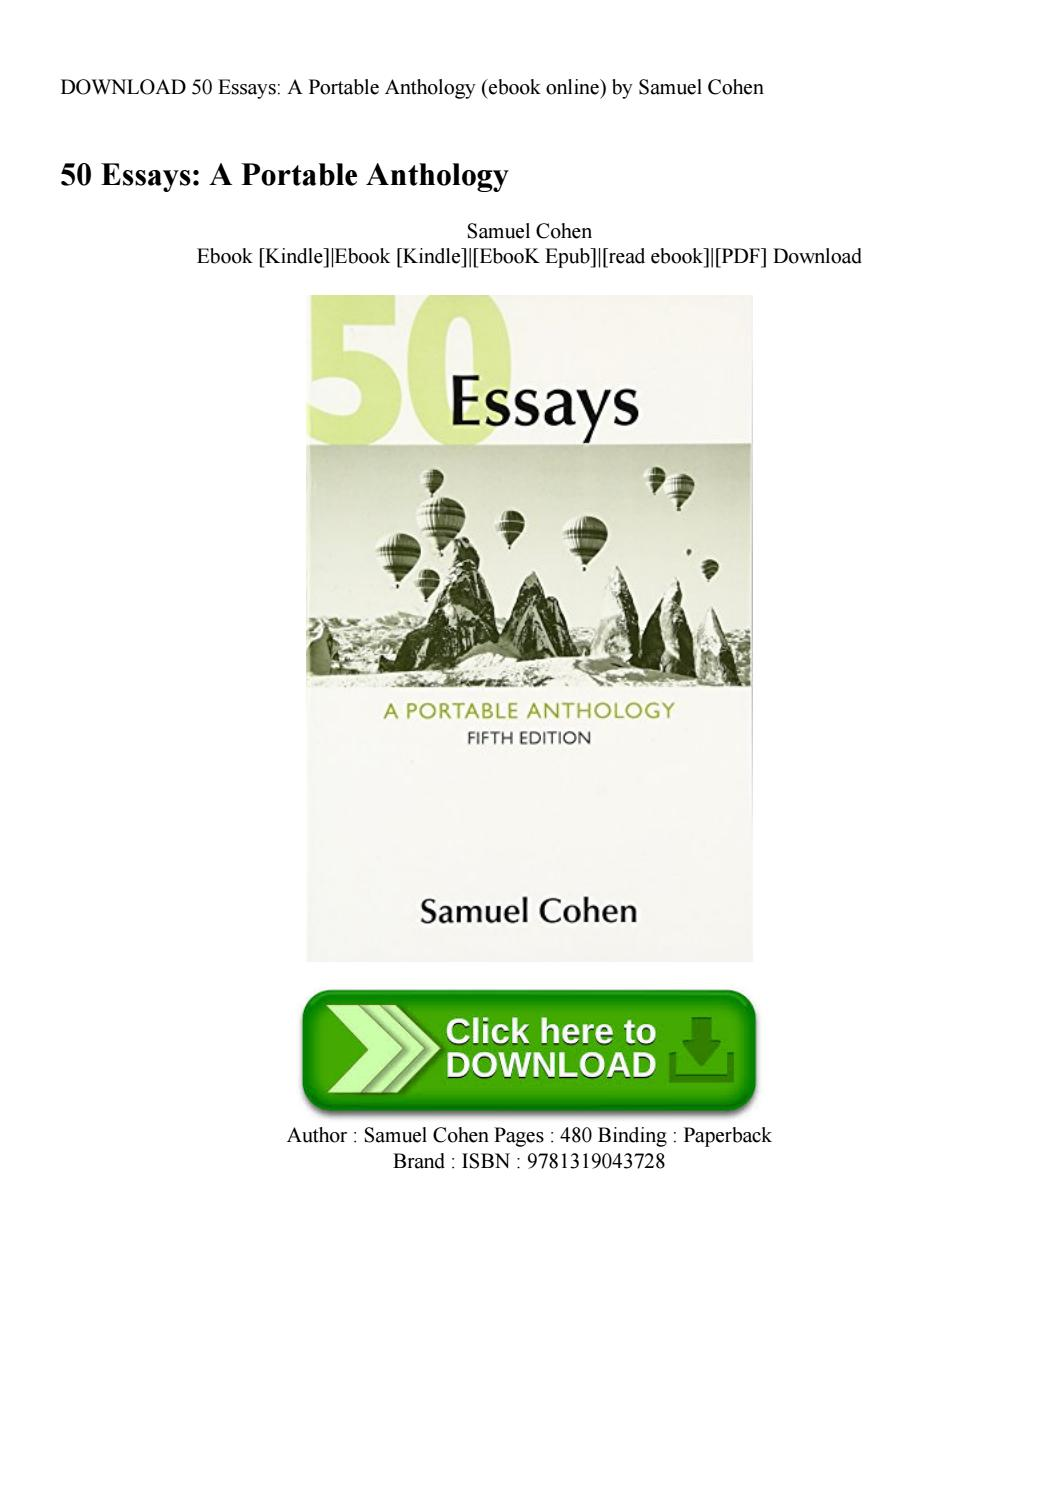 009 Essays Portable Anthology 5th Edition Pdf Page 1 Essay Fascinating 50 A Full